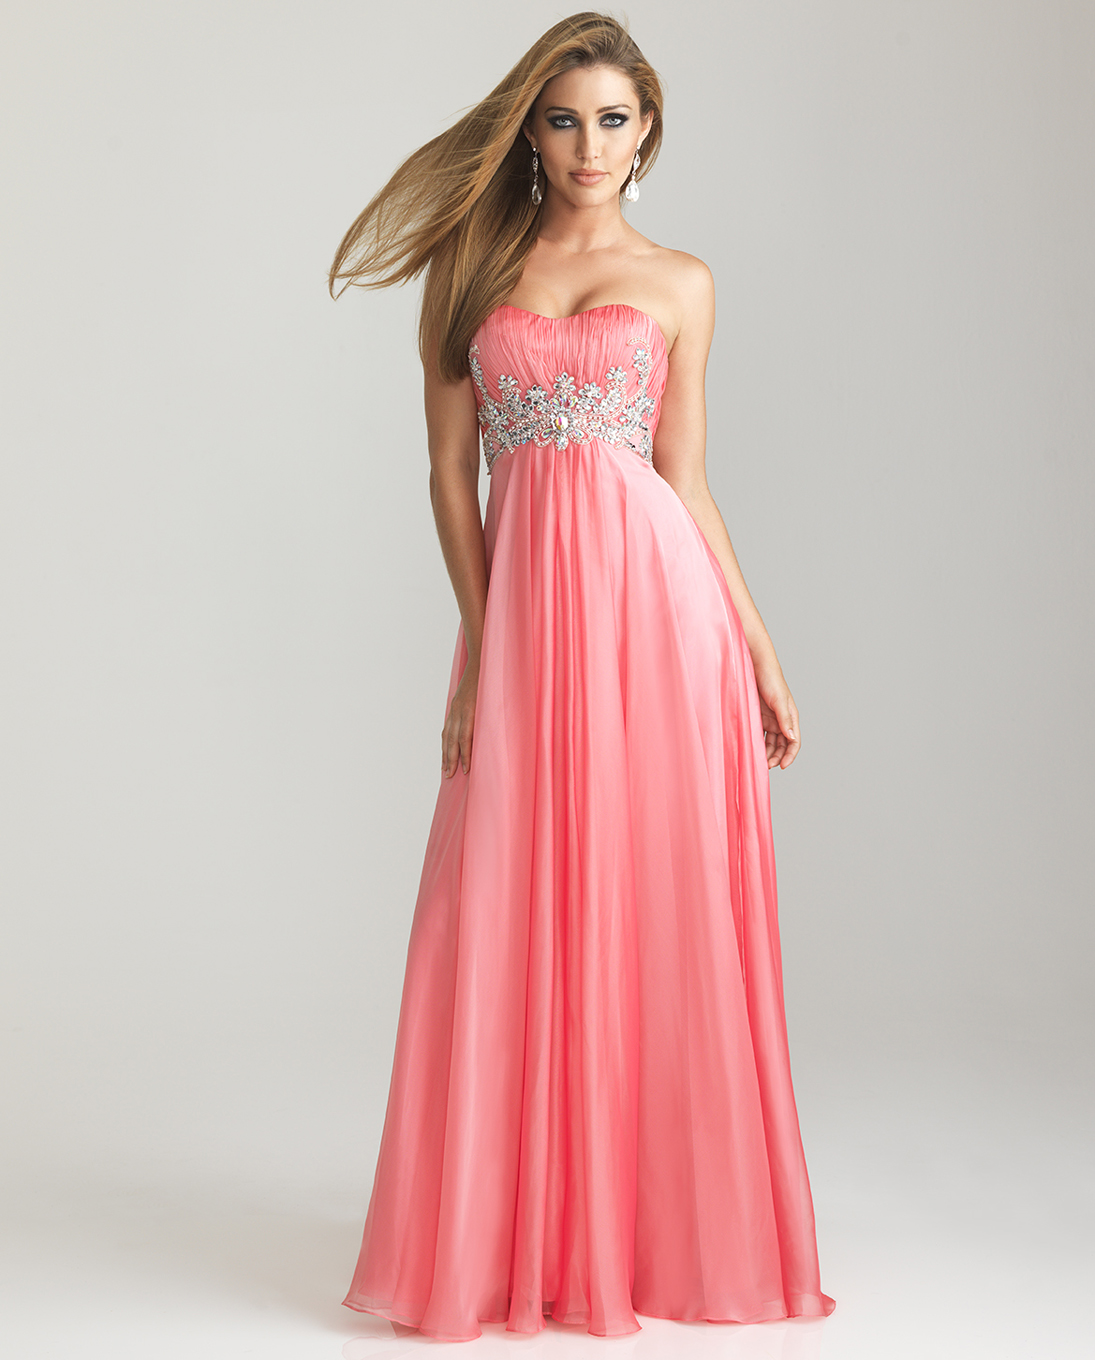 Blog of Wedding and Occasion Wear: Prom Dresses for Short ...